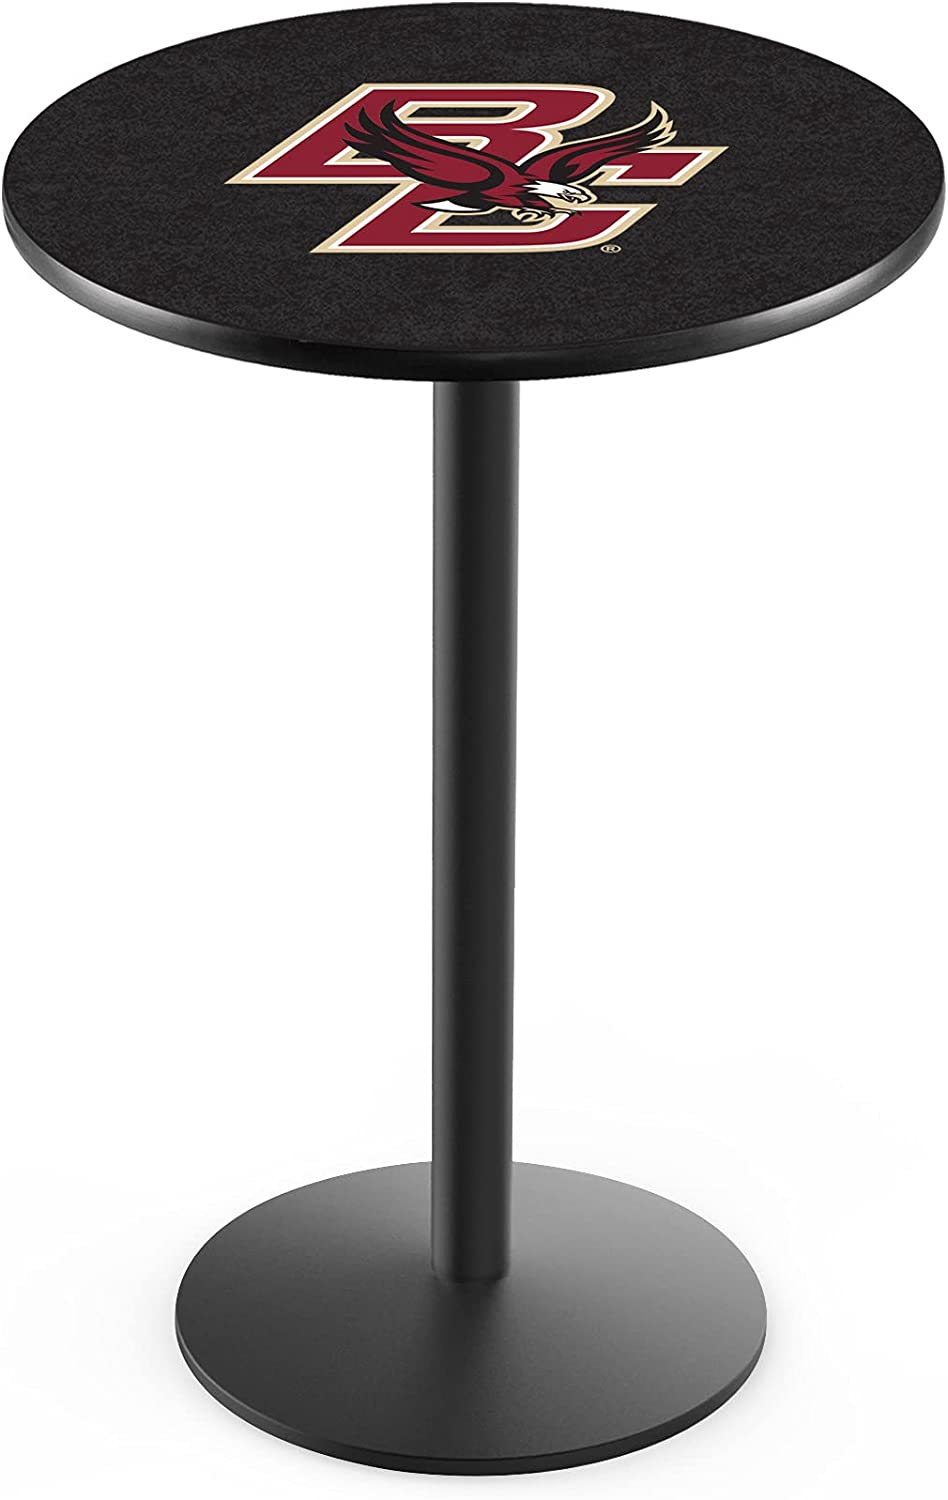 Holland Bar Stool L214B Boston Pub Officially T College 100% quality warranty! Indianapolis Mall Licensed